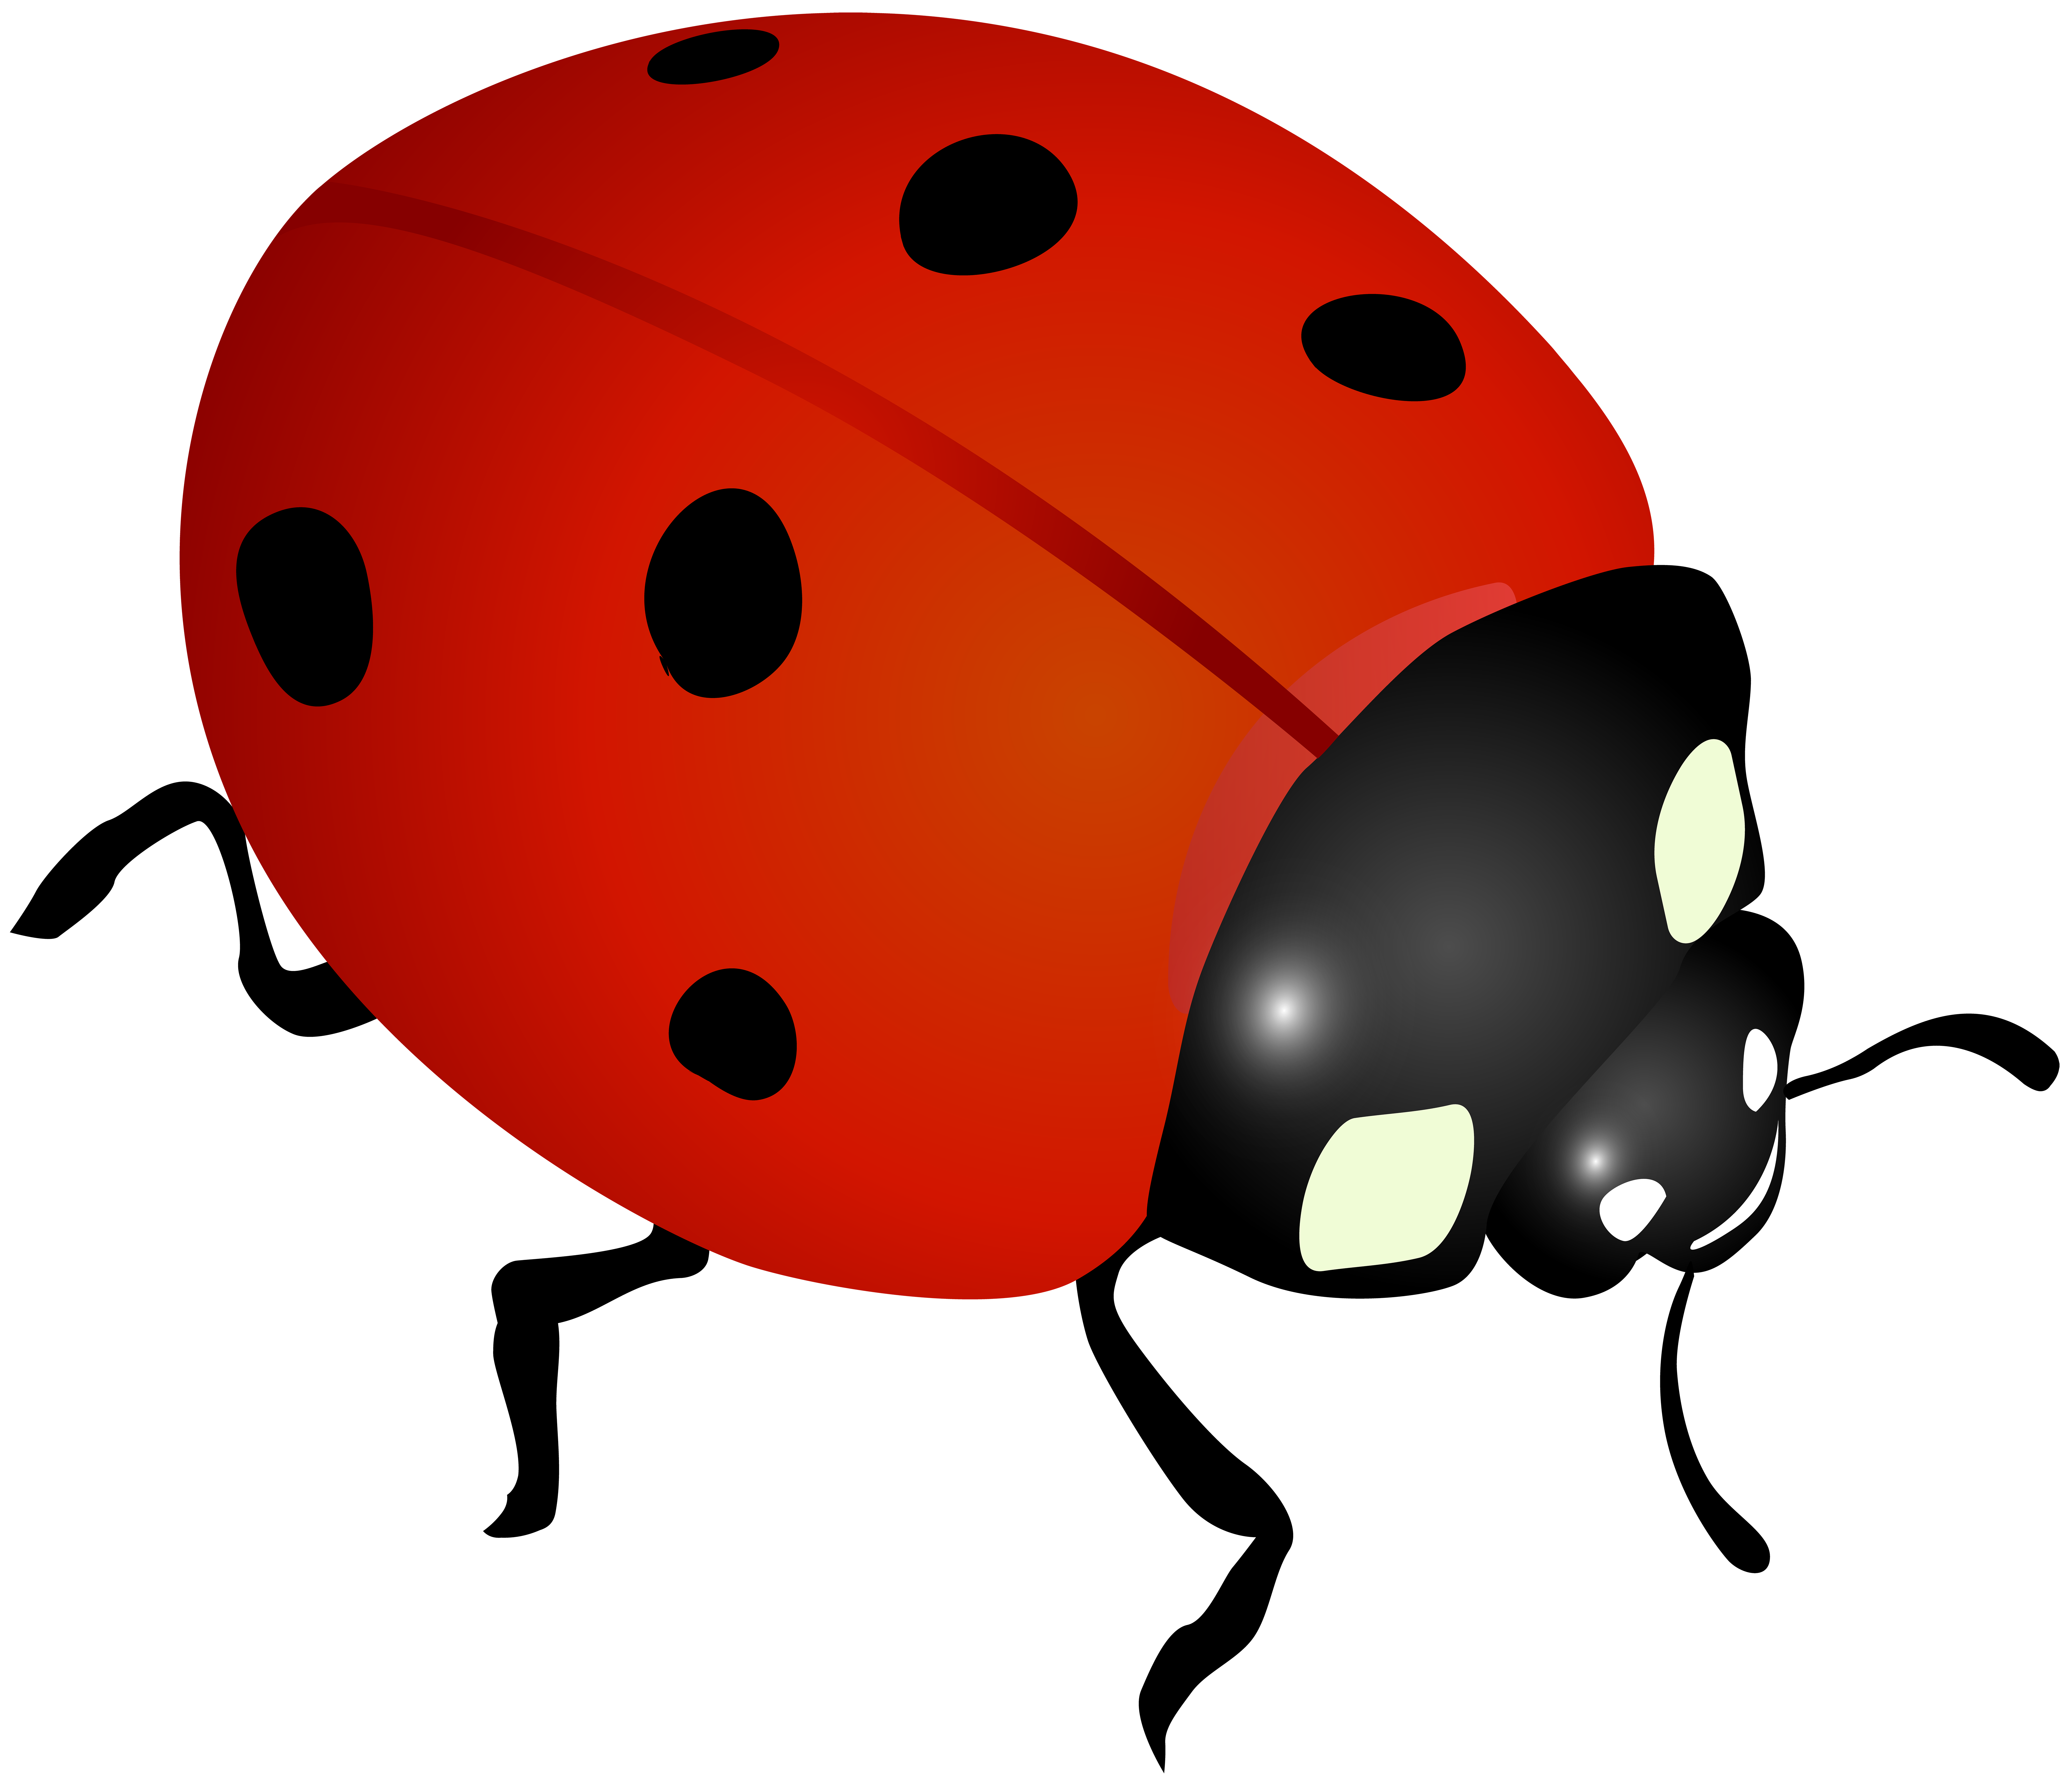 ladybug clip art image gallery yopriceville high quality images and transparent png clipart #29687